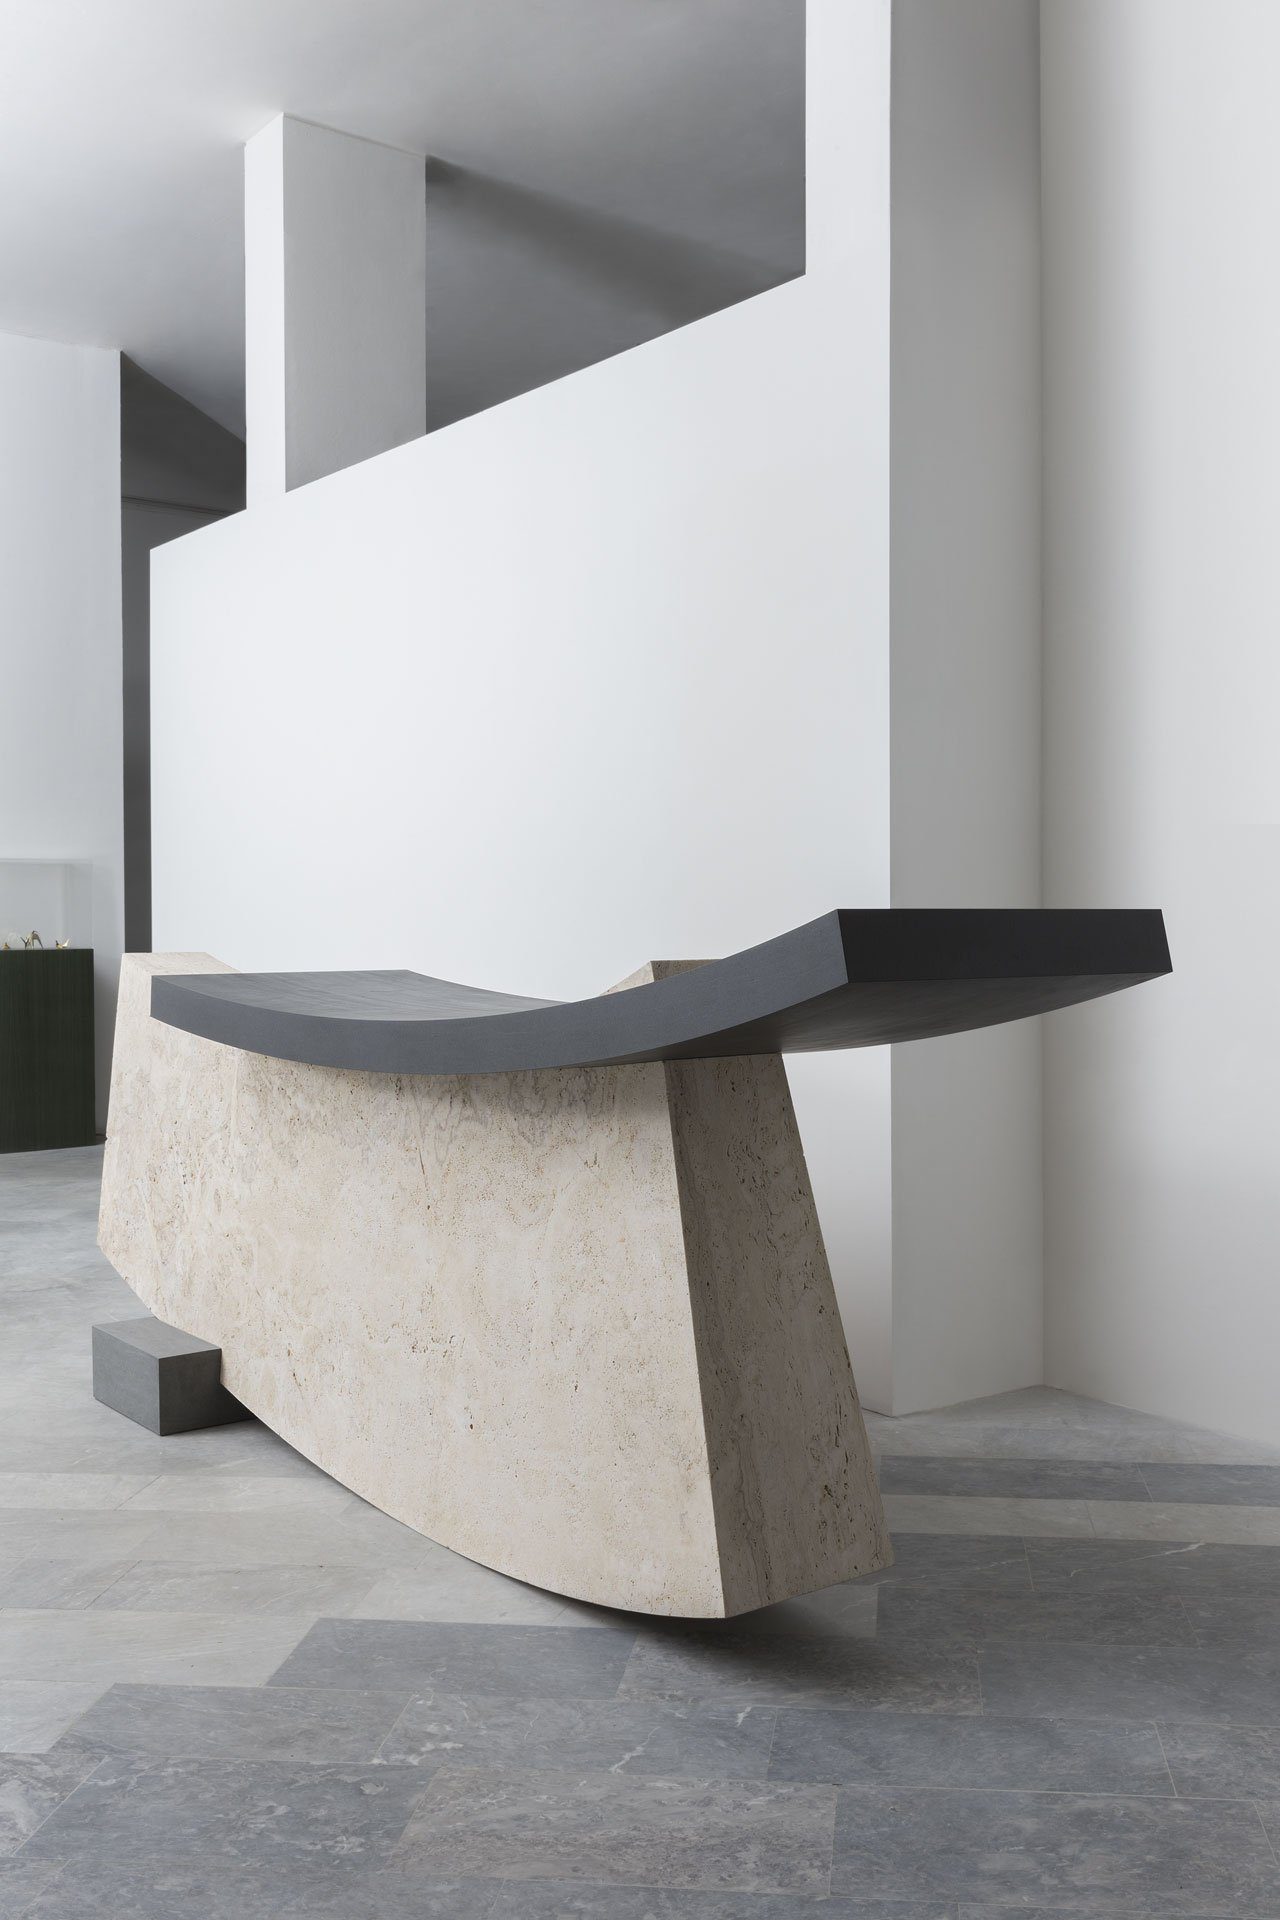 Reception desk by Wonmin Park and Testi for the Wallpaper*Handmade 2016 collection.